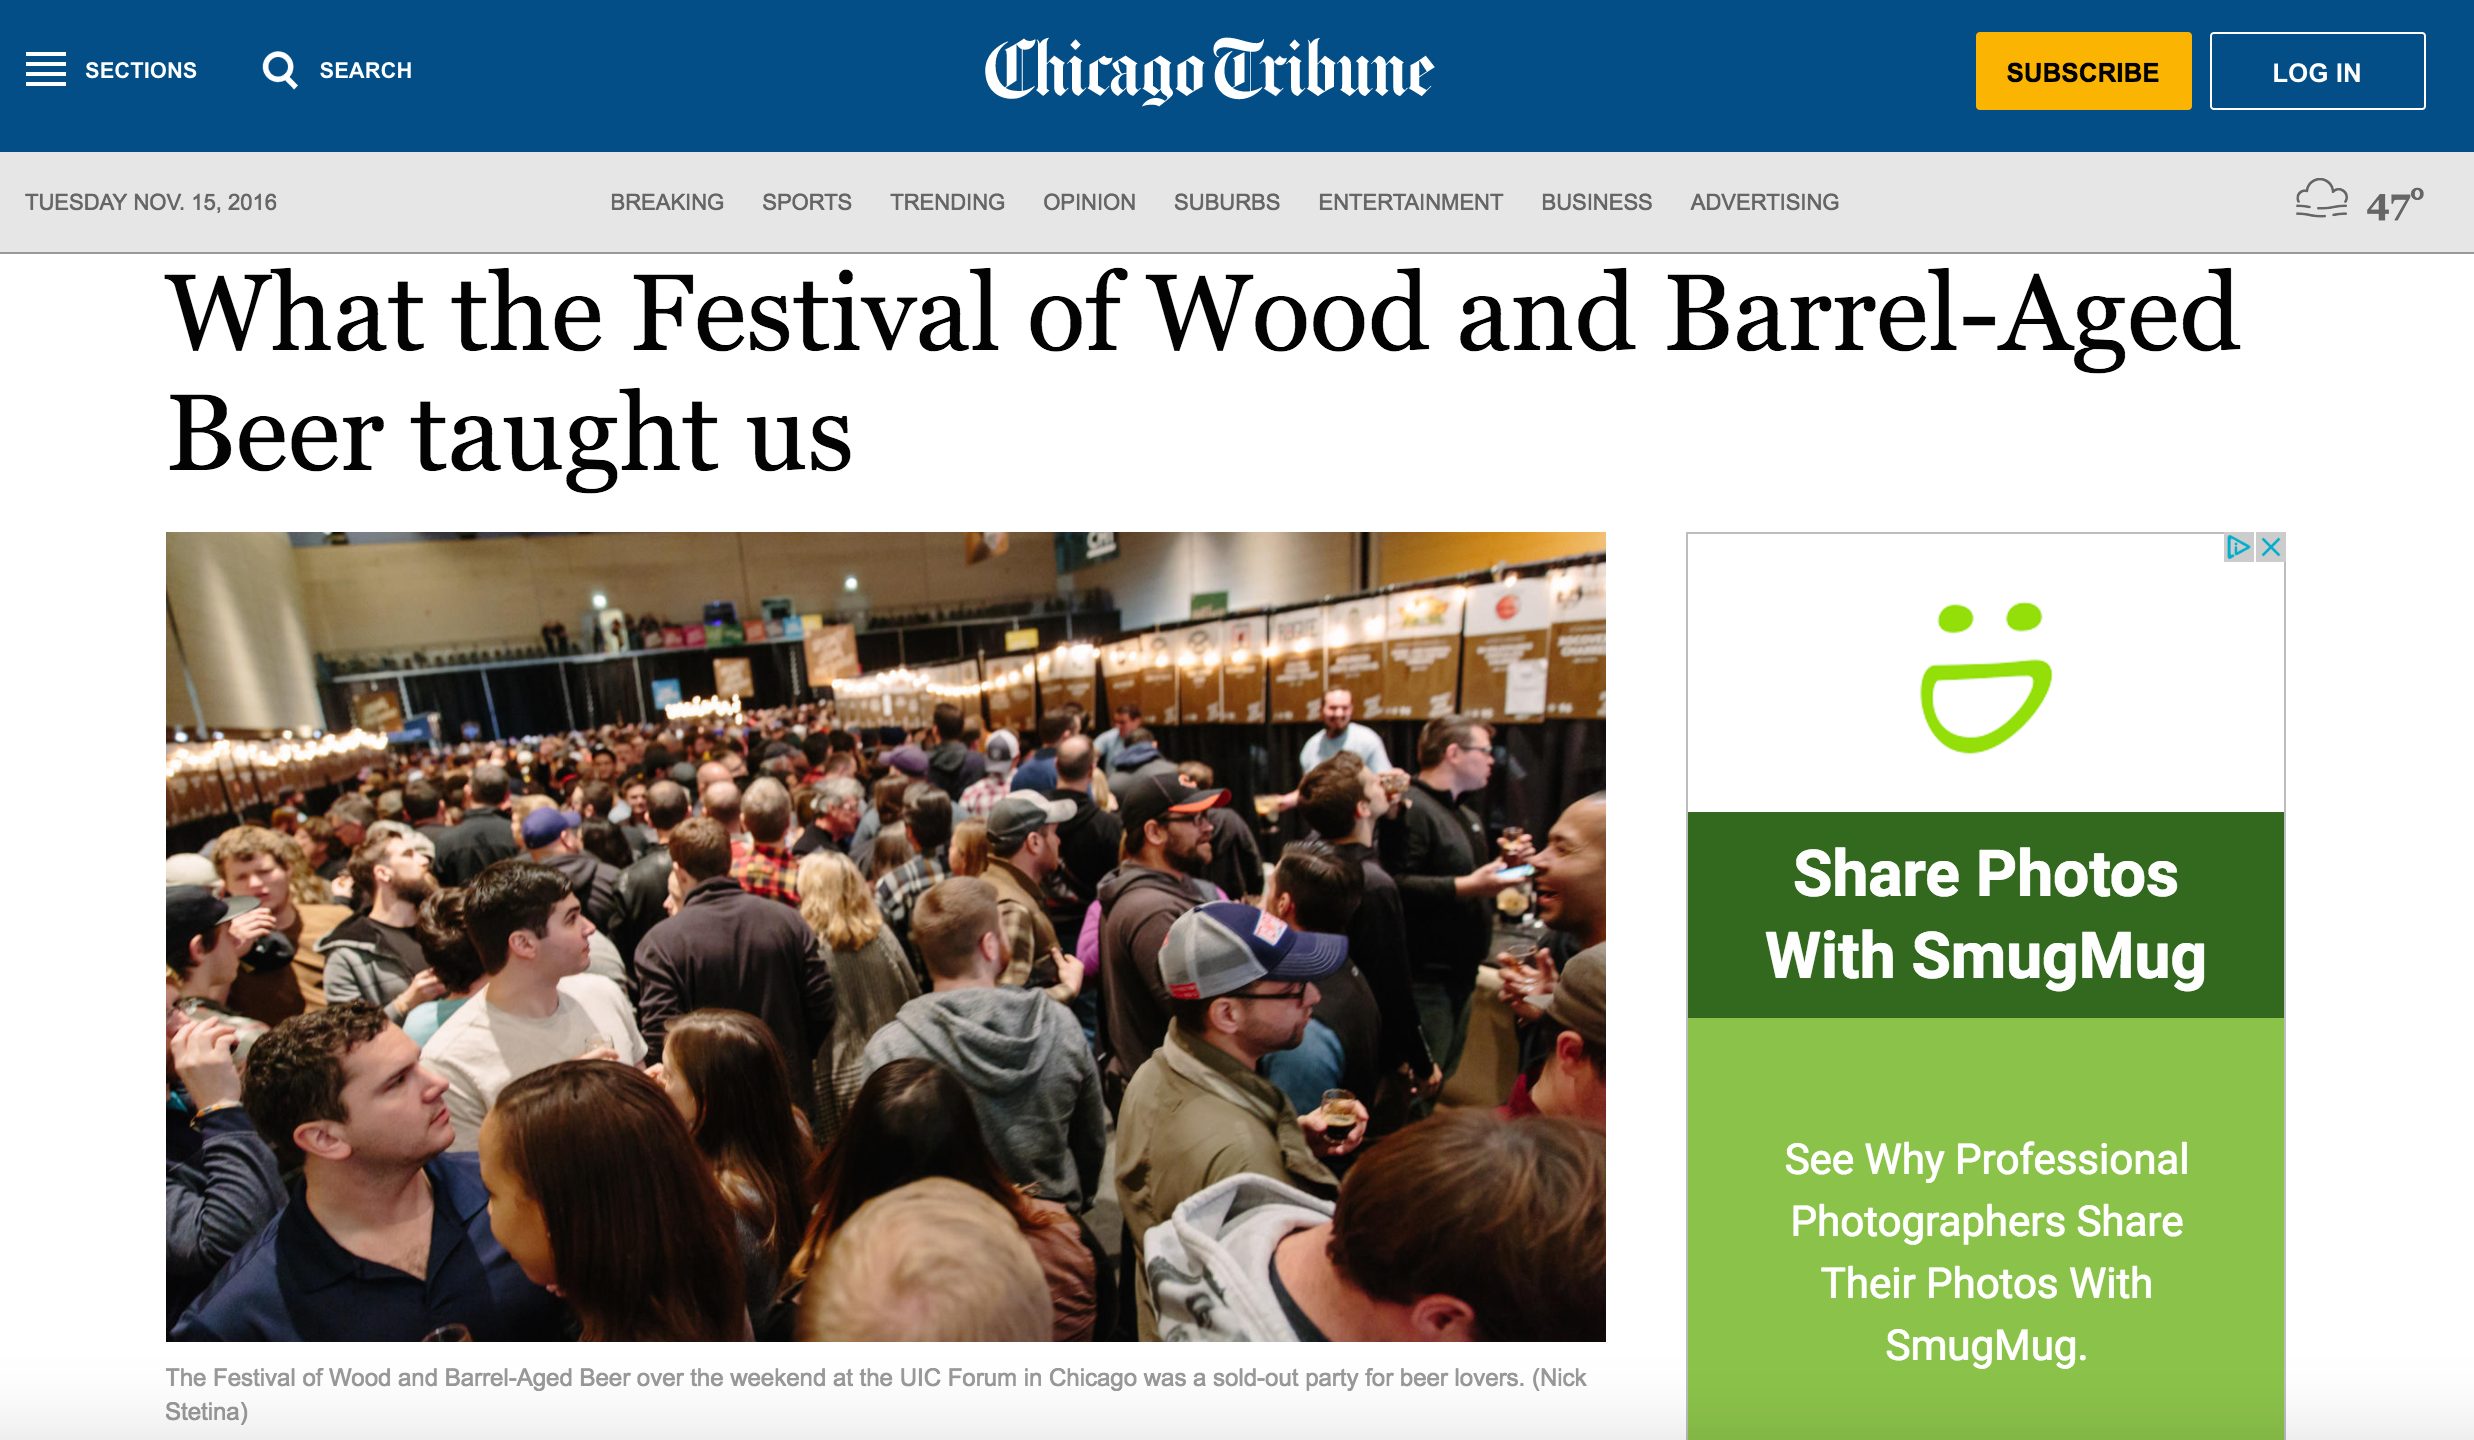 A recent photo featured in the Chicago Tribune.